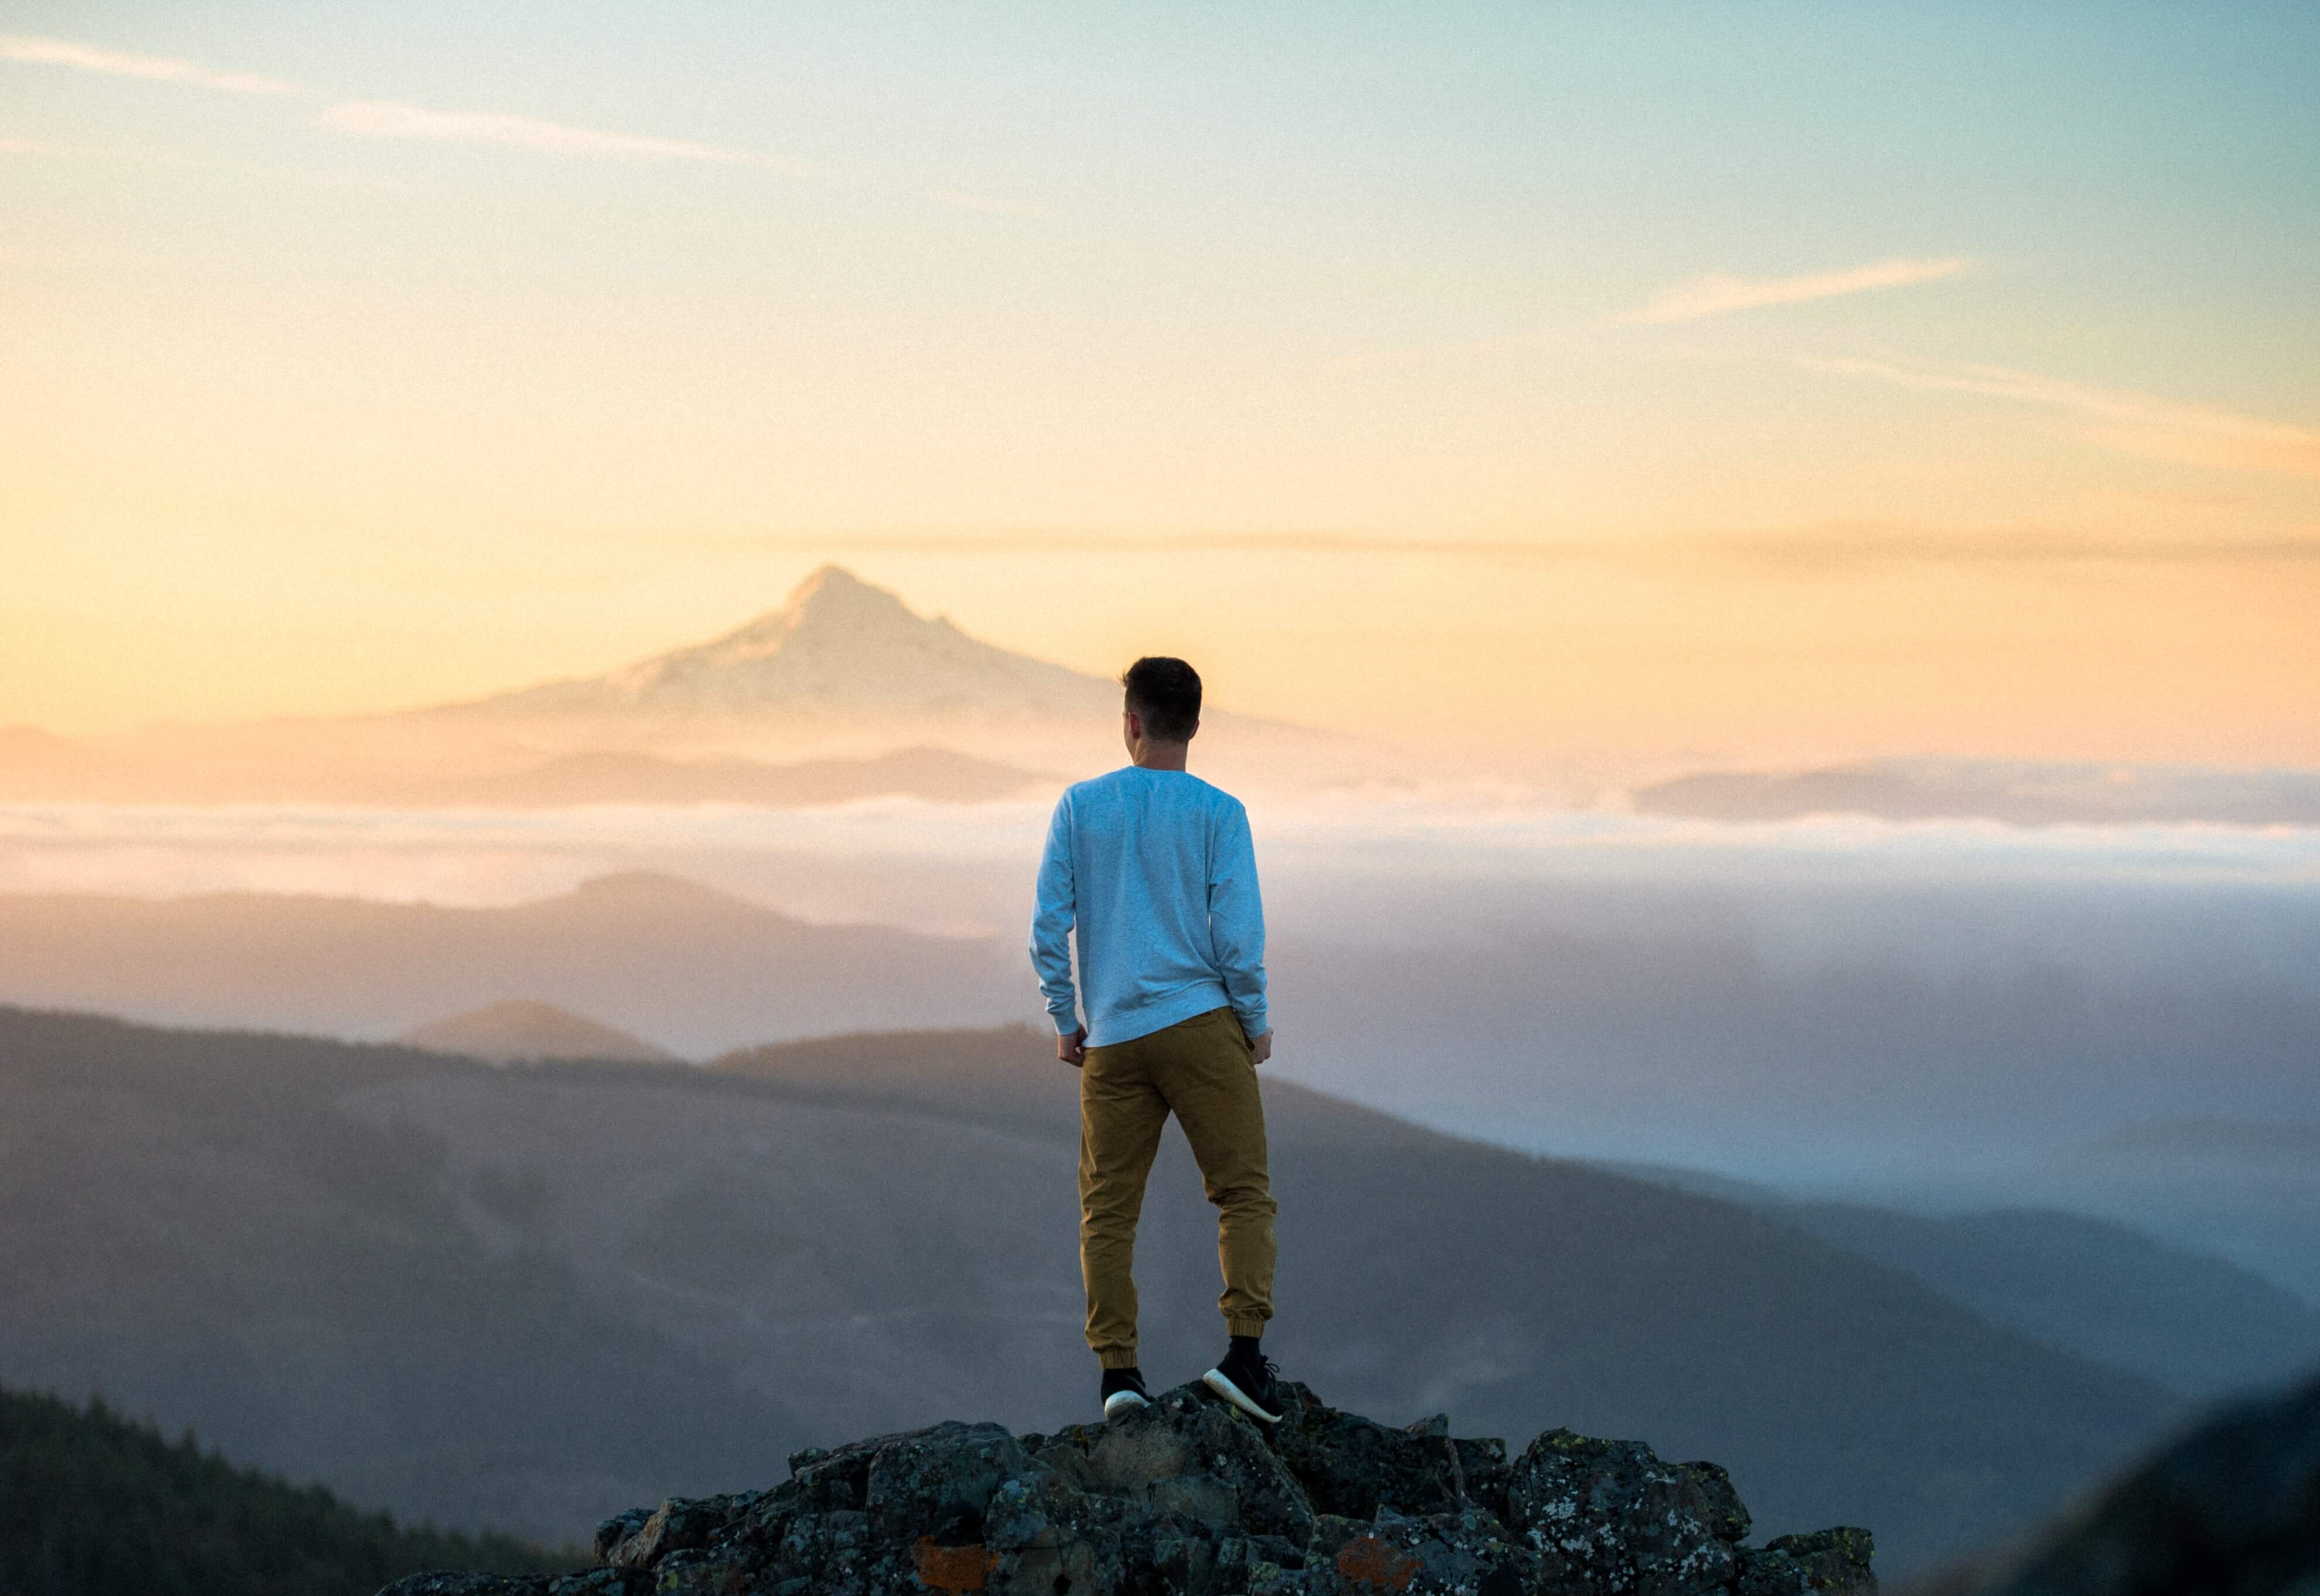 Searching for new horizons. Man on top of mountain